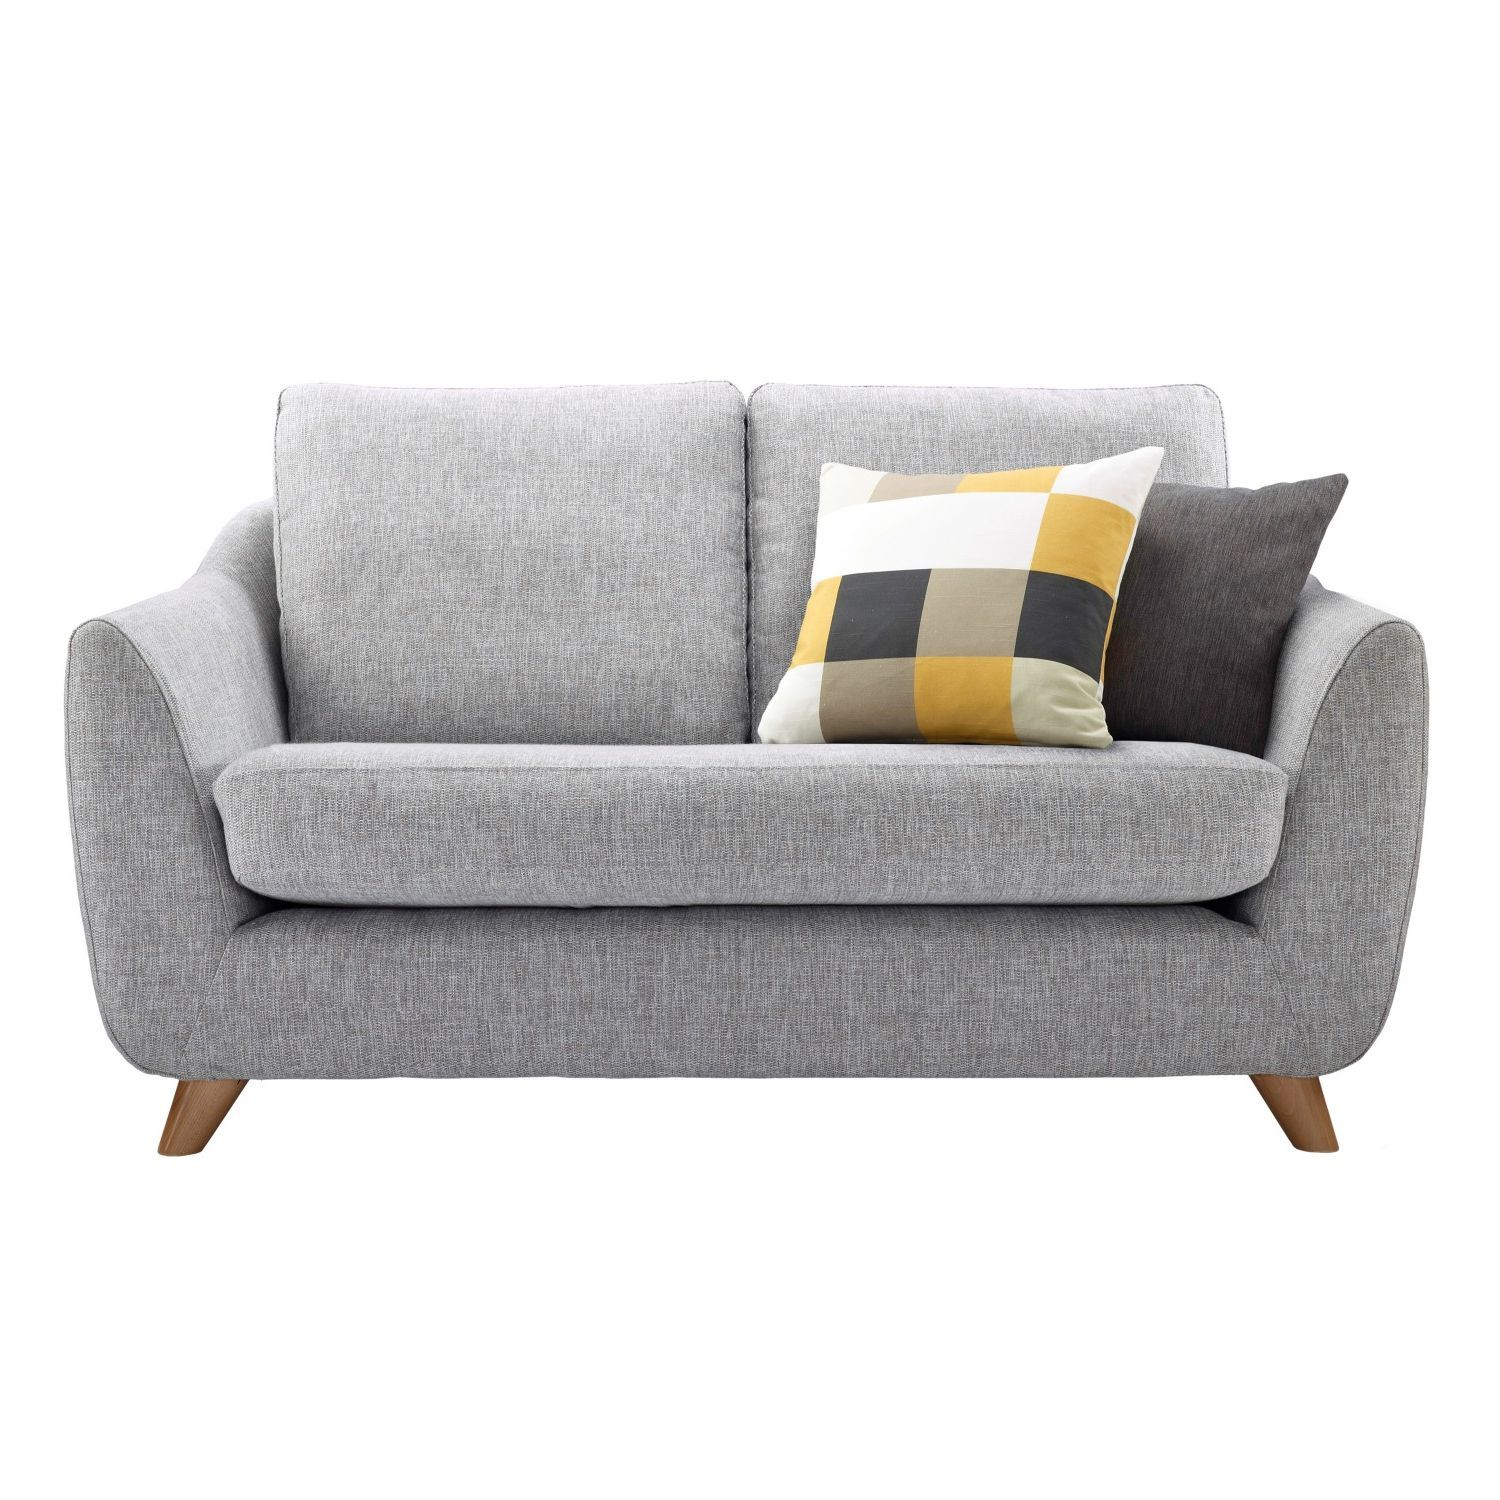 Small Office Couch With Images Bedroom Couch Small Sofa